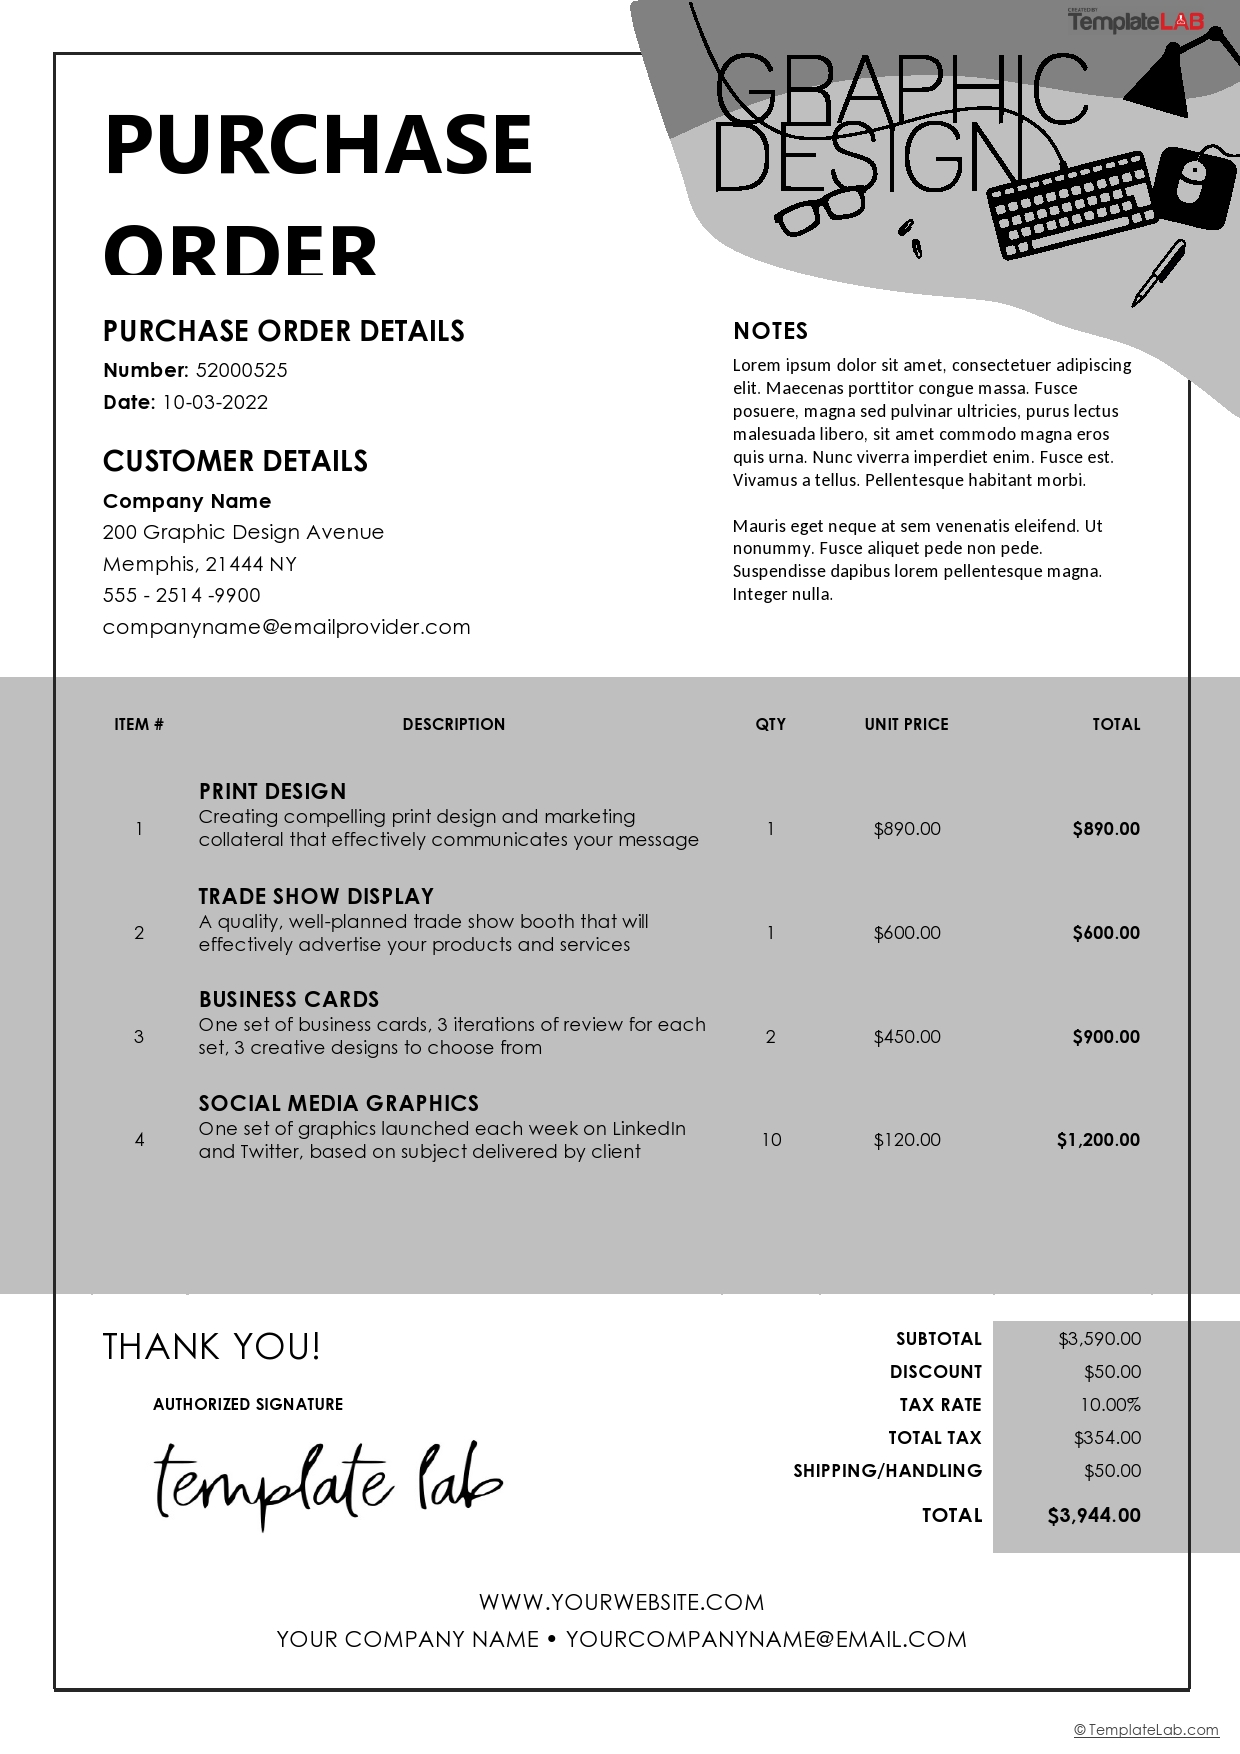 Free Graphic Design Purchase Order Template